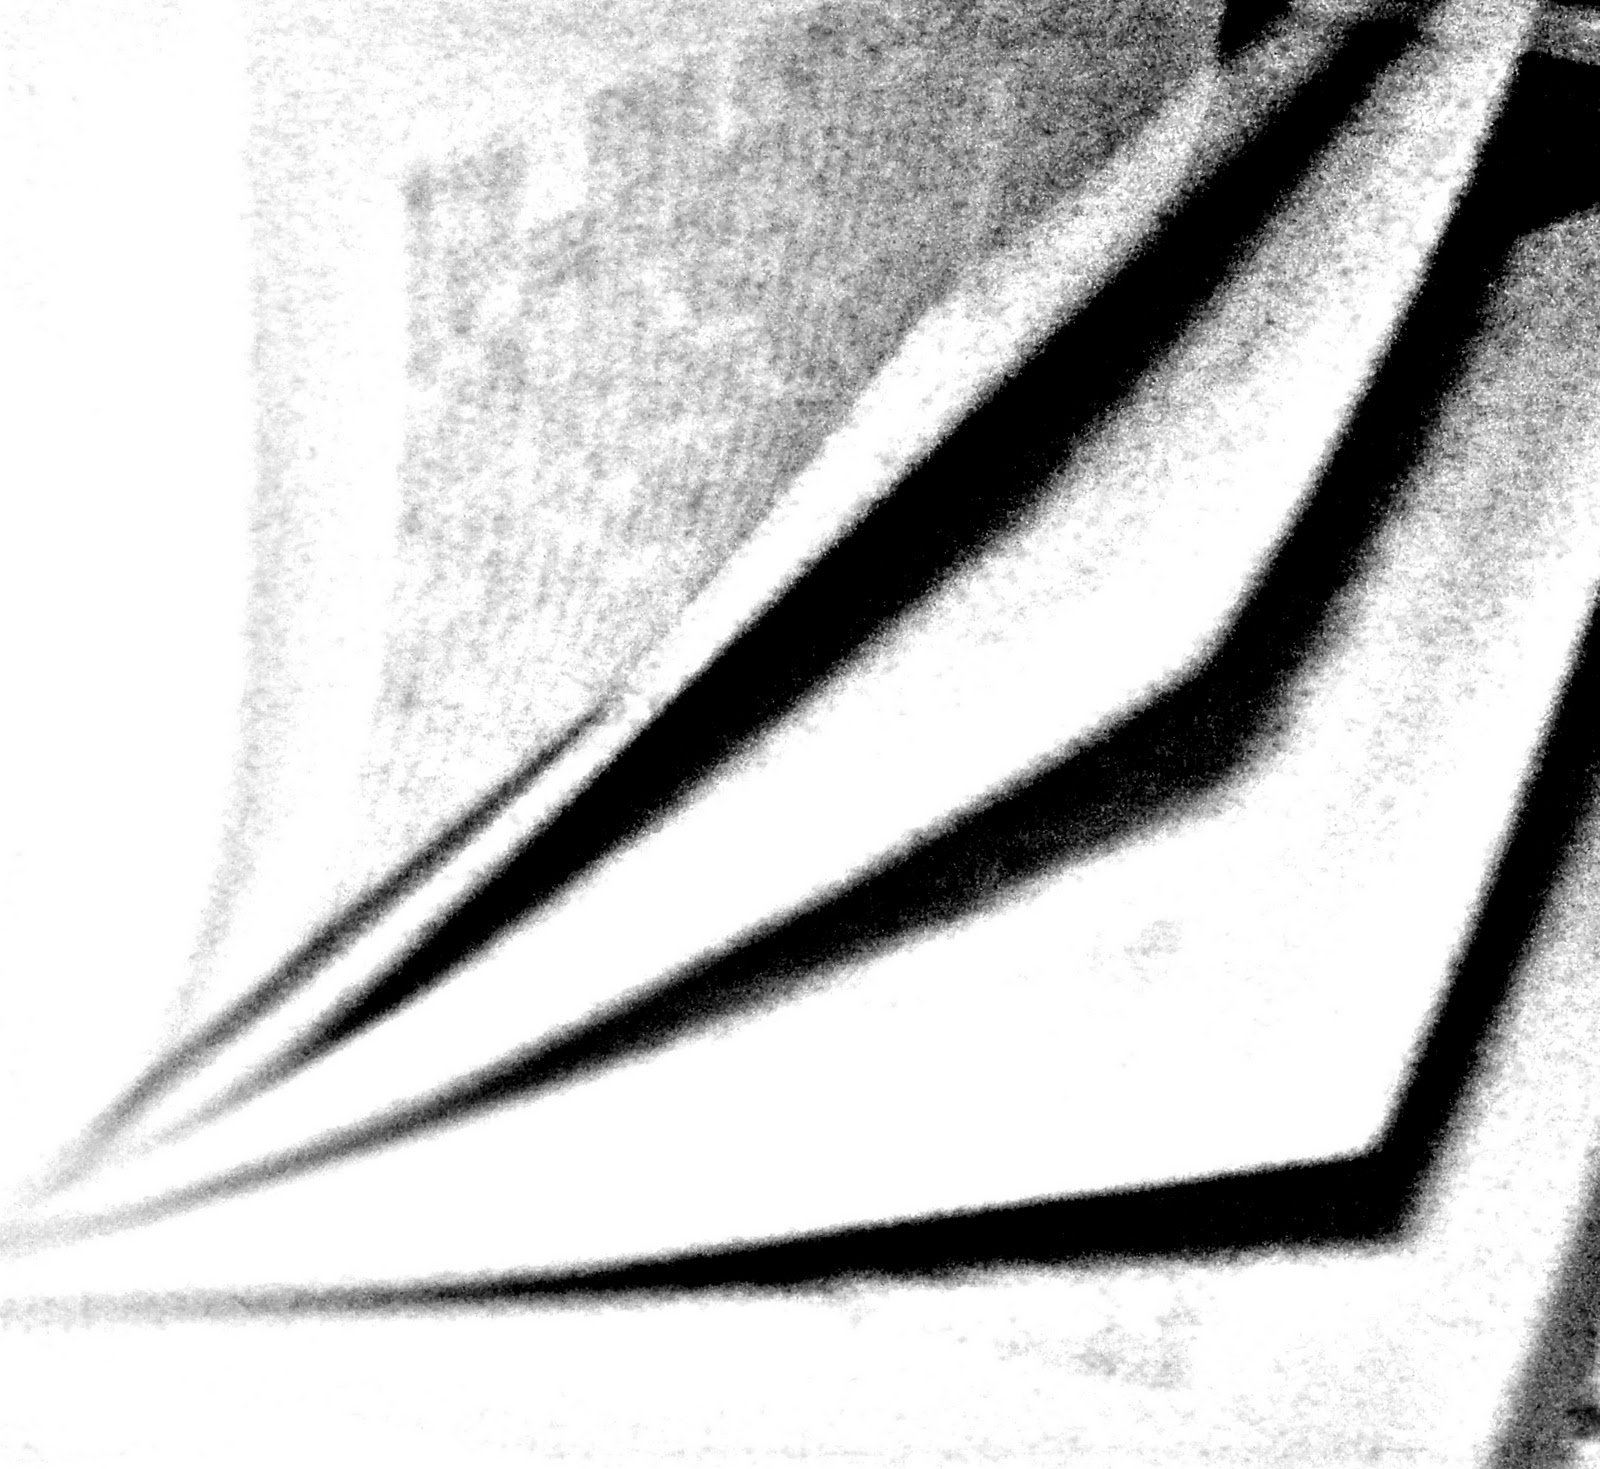 Line Texture Black And White : Photography jillayna buller movement line texture